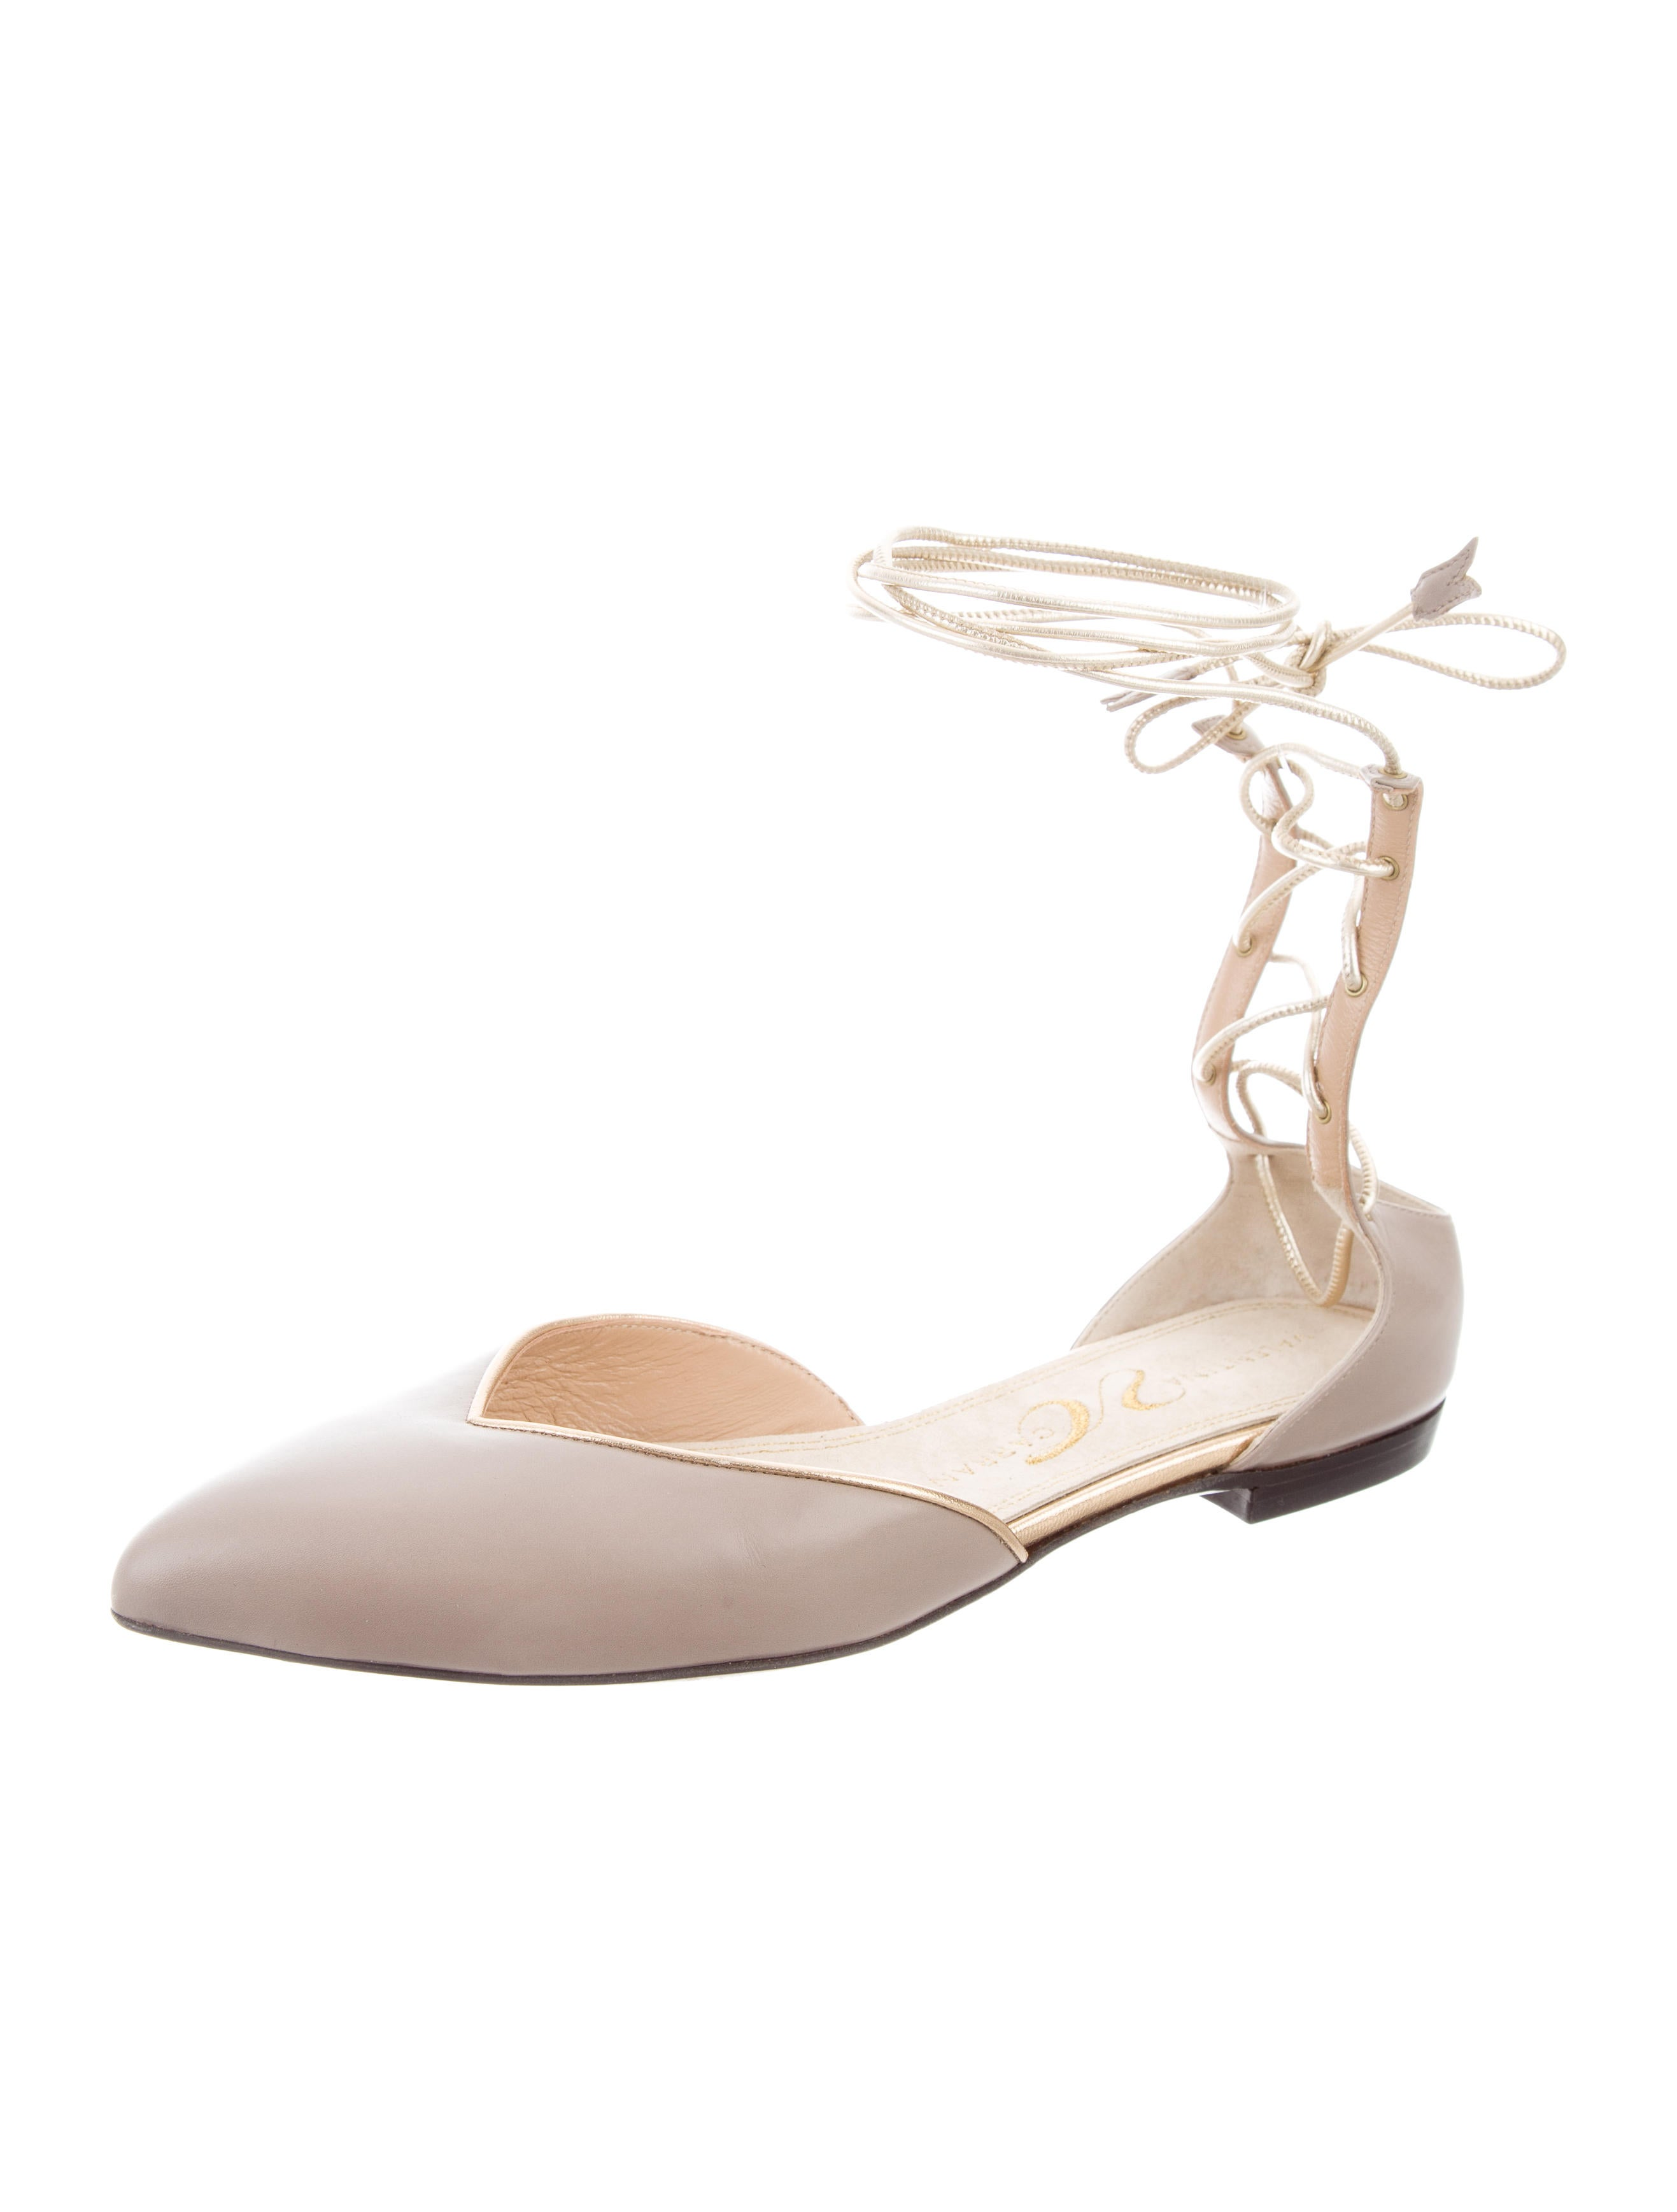 cheap sale the cheapest buy cheap lowest price Valentina Carrano Cutout Pointed-Toe Flats cheap price buy discount cheap eastbay cheap sale shop for pUaQmz